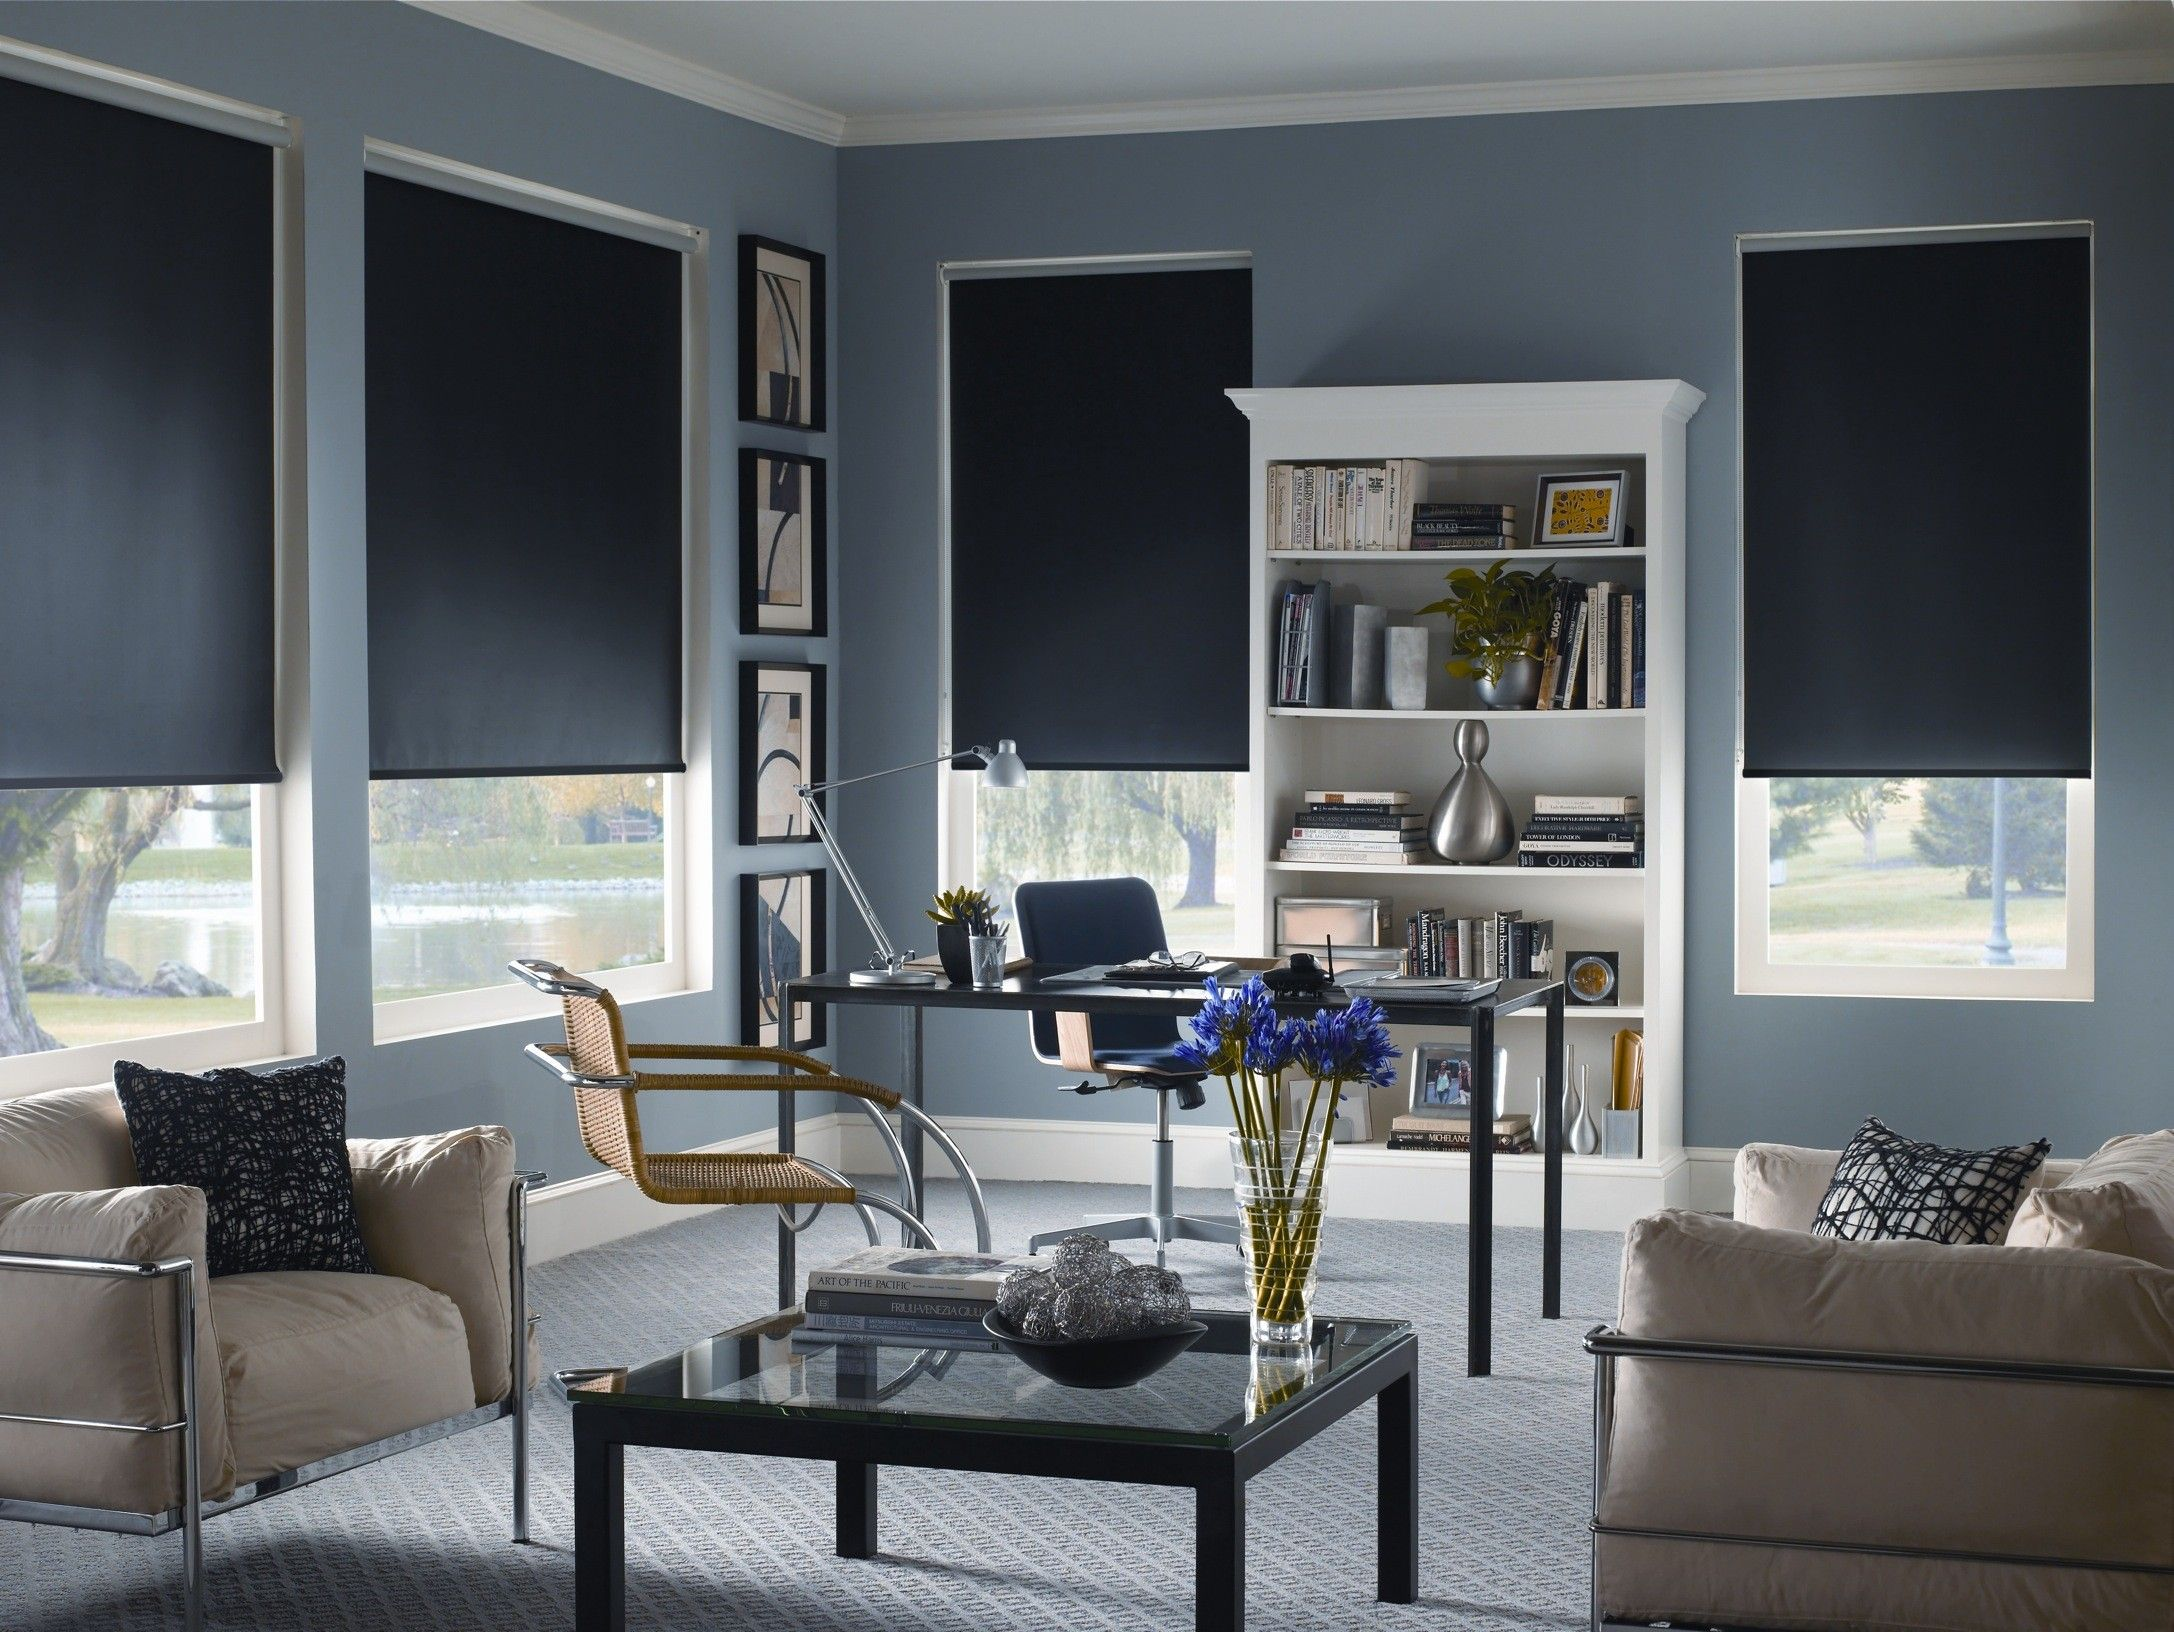 vancouver tab shades myhomedesign budget blinds top wa bamboo win panel